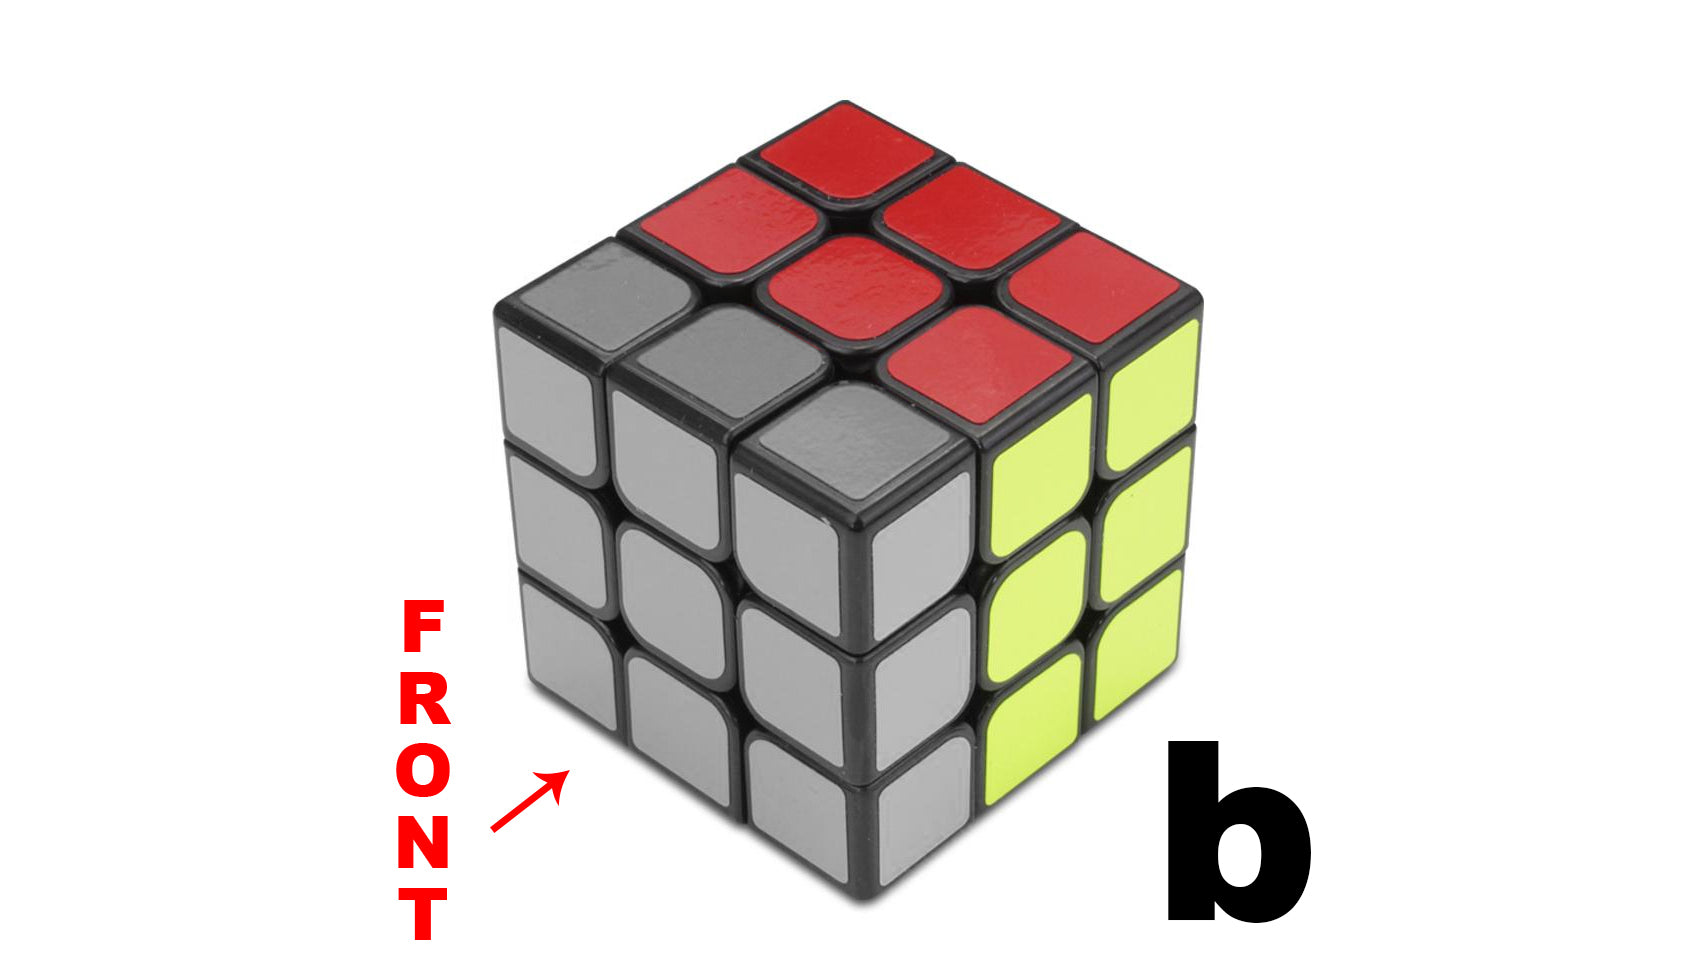 unofficial 3x3 notations guide with lowercase letters